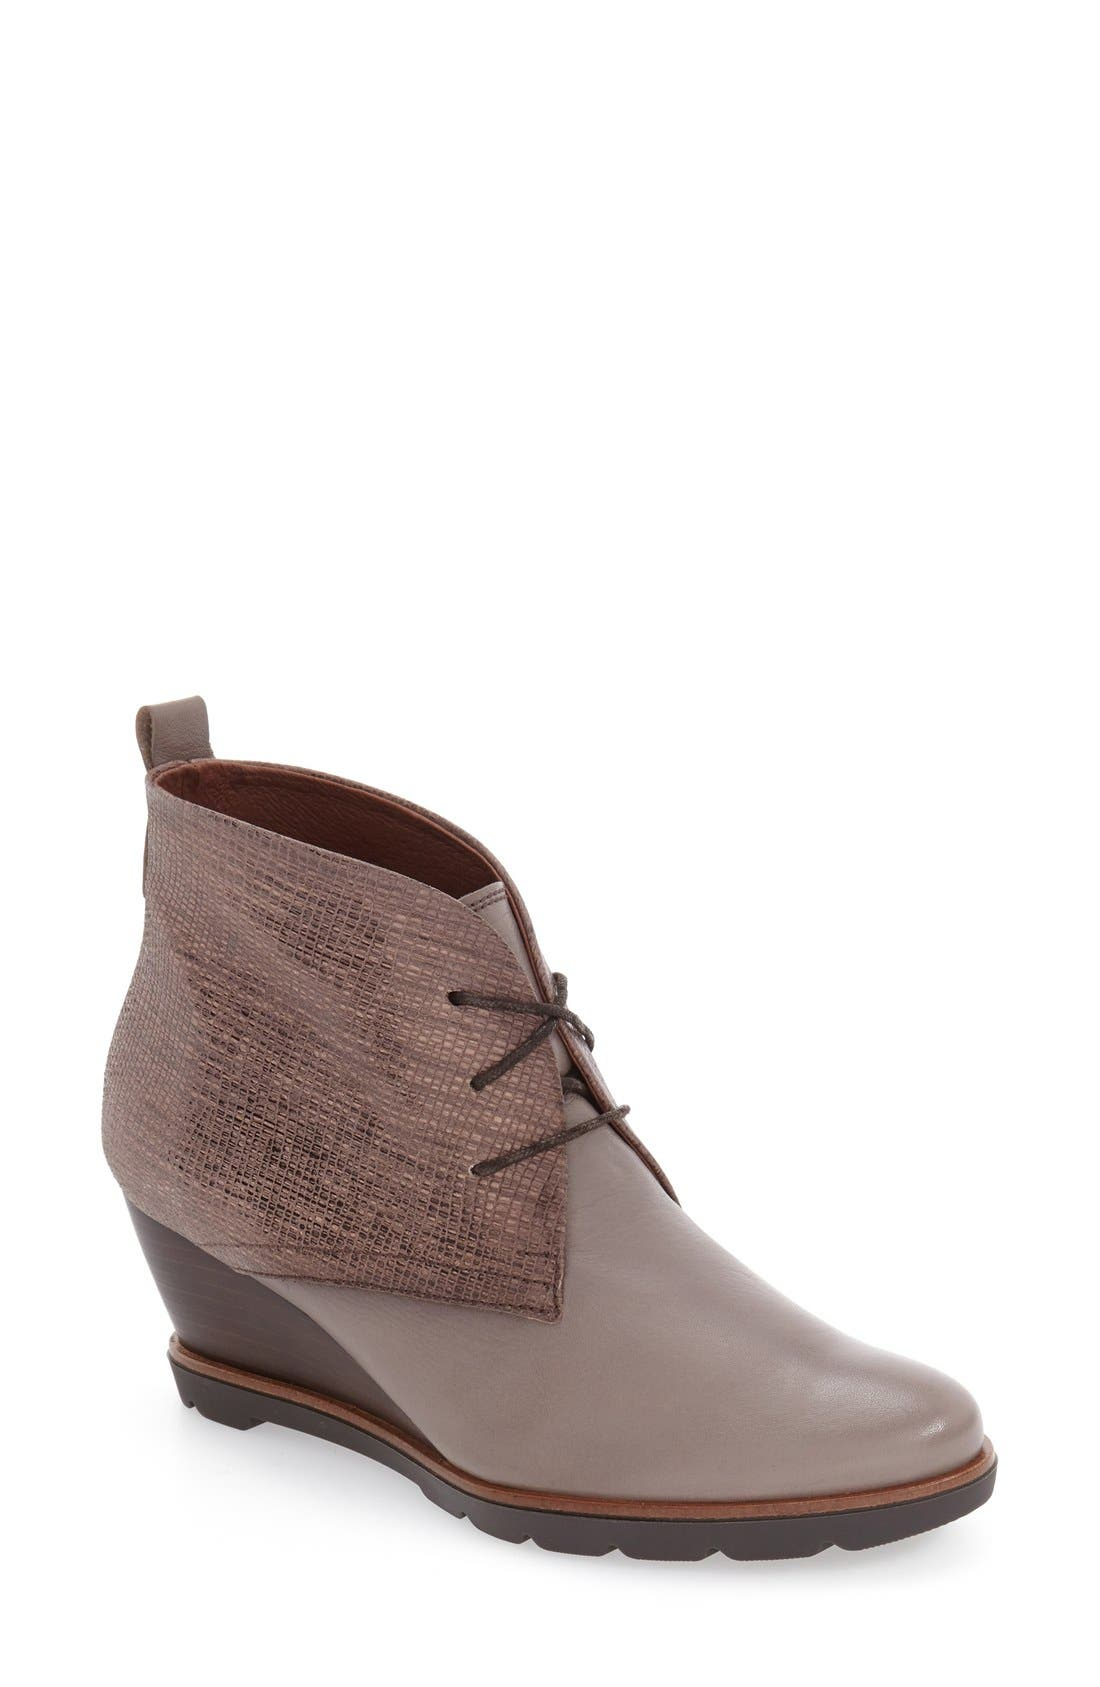 Alternate Image 1 Selected - Hispanitas 'Harmonie' Lace-Up Wedge Bootie (Women)